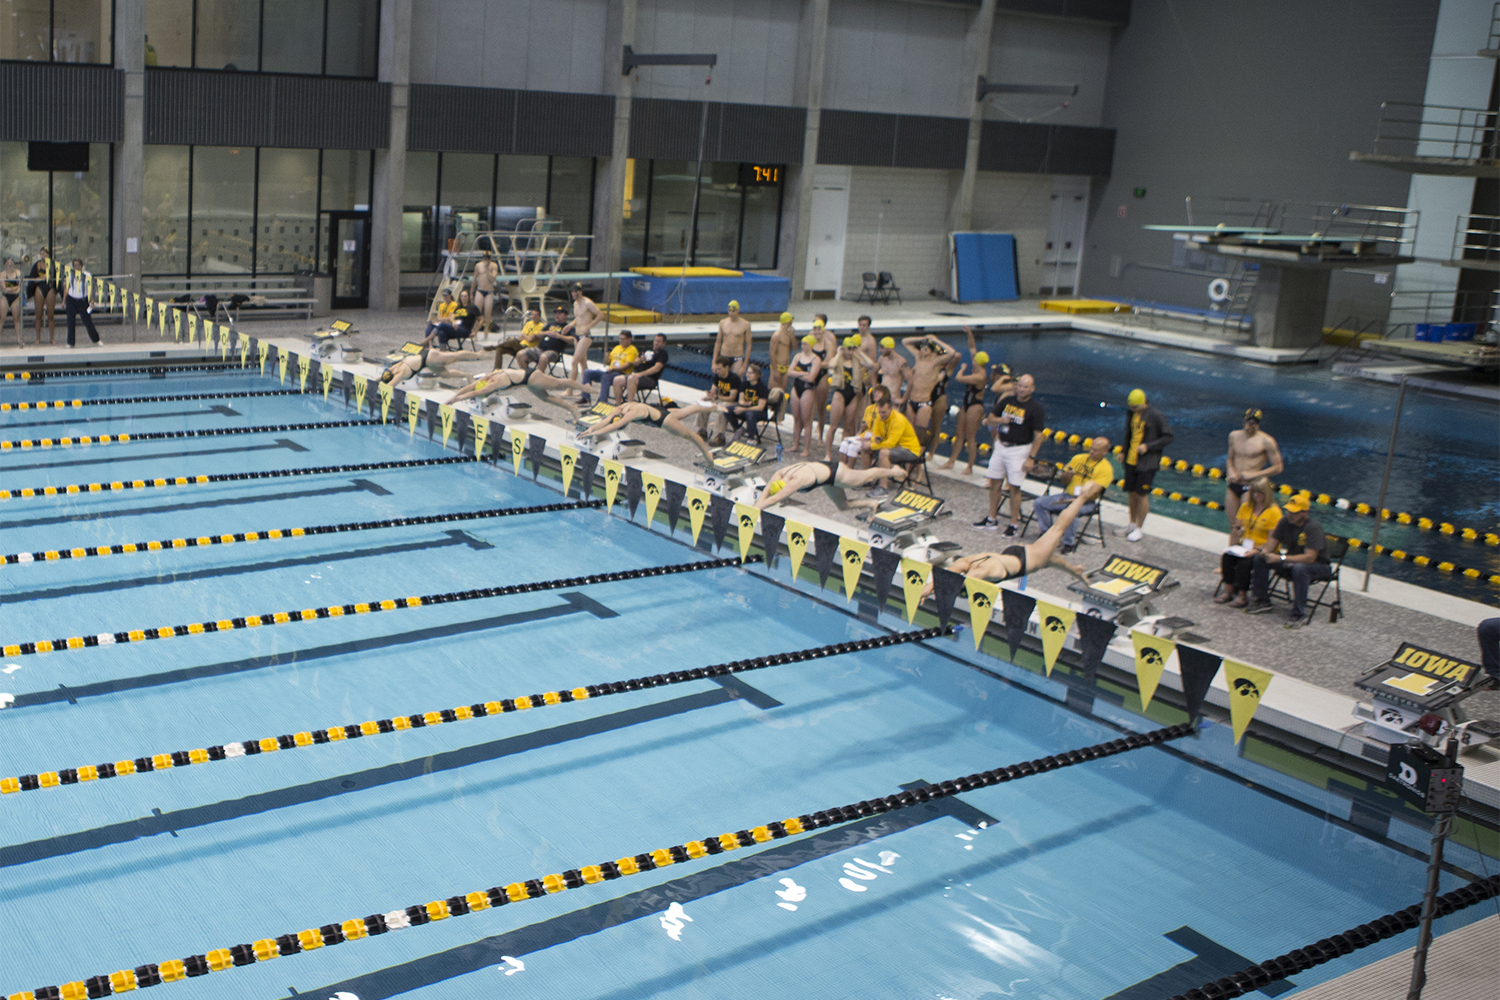 Swimmers+dive+off+the+blocks+during+the+Iowa+Swimming+and+Diving+Intrasquad+Meet+at+the+Campus+Recreation+and+Wellness+Center+on+Saturday%2C+September+29%2C+2018.+